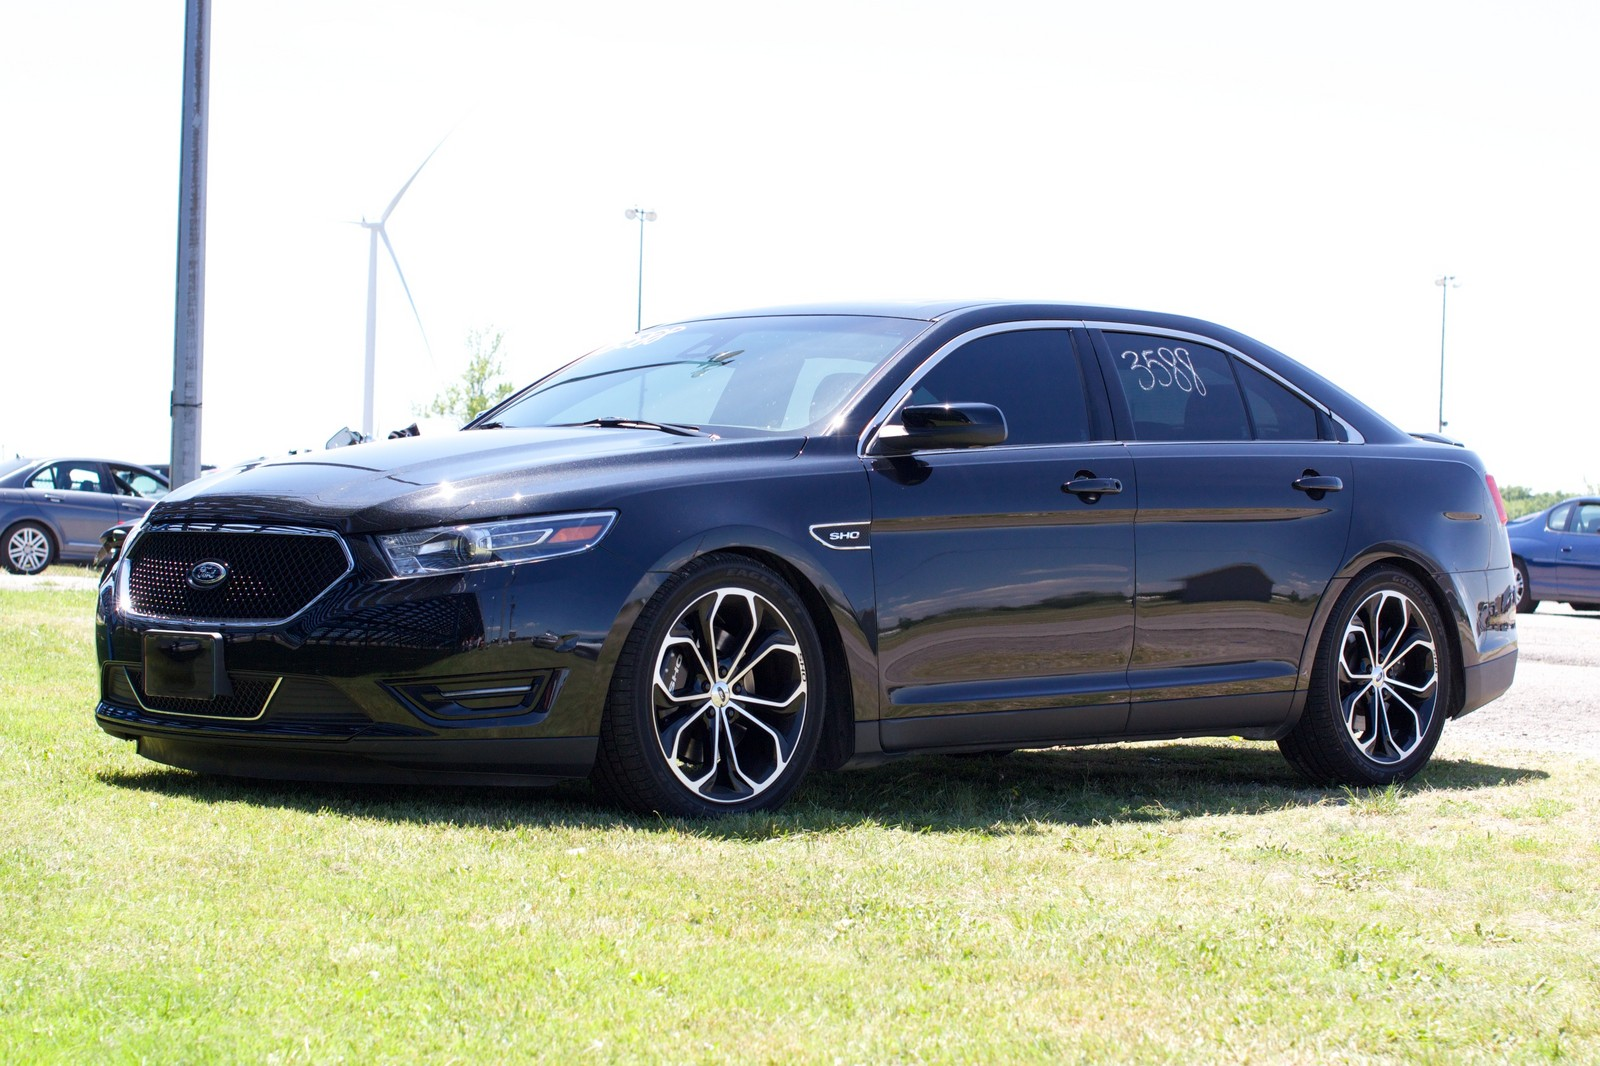 2013 Ford Taurus Sho 1 4 Mile Drag Racing Timeslip Specs 0 60